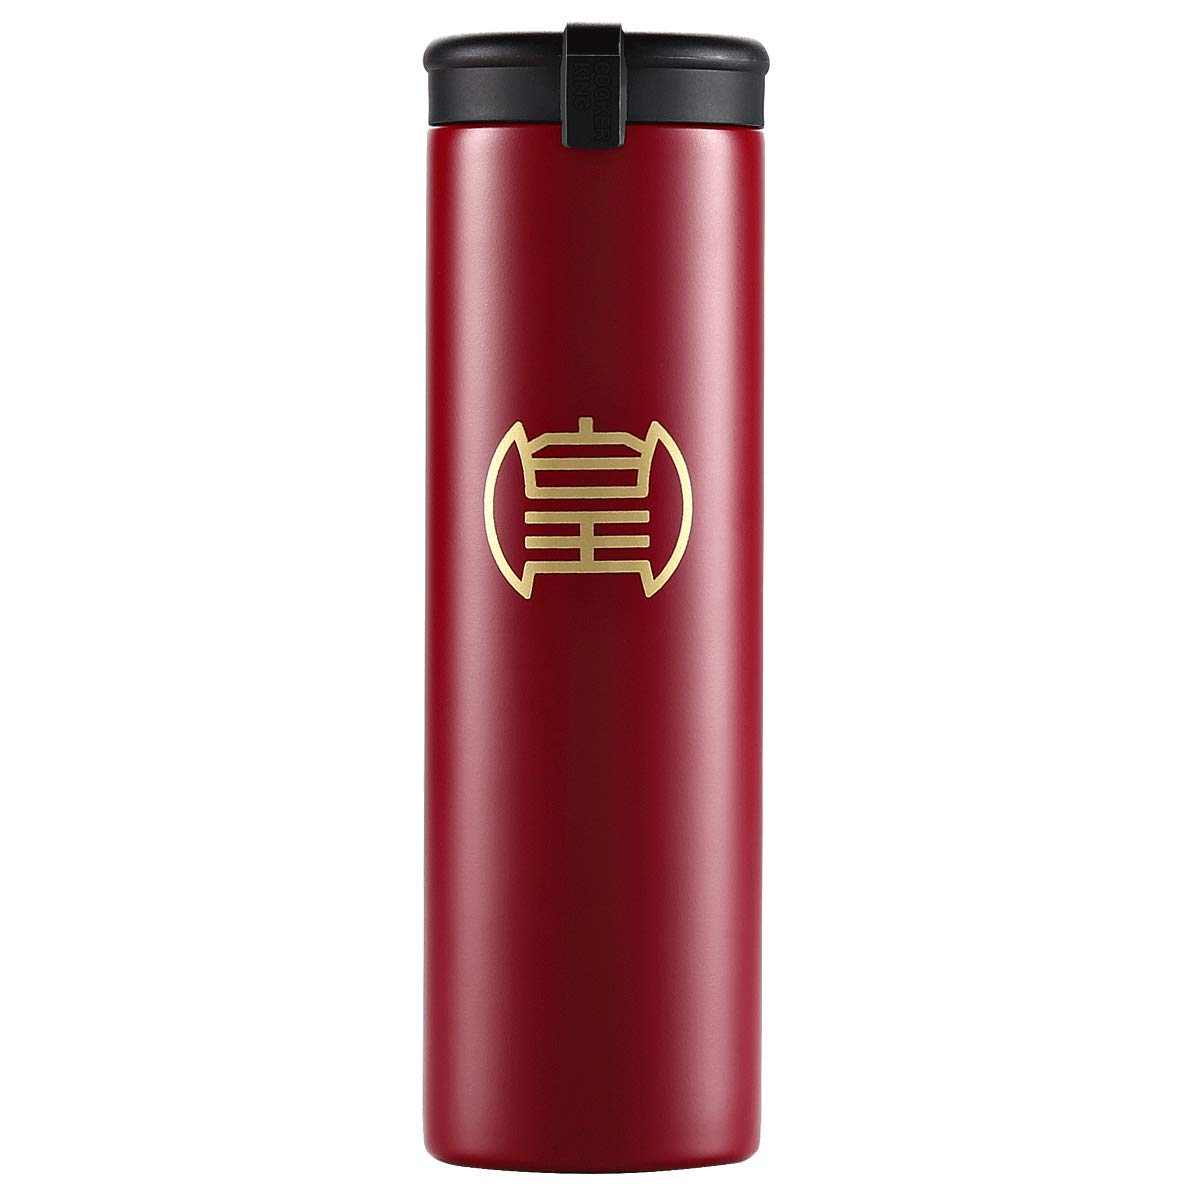 Sports Water Bottle Double Walled Vacuum Insulated Travel Mug //14oz Thermos Cup for Outdoor Camping Hiking Cycling Fitness Black Cook King